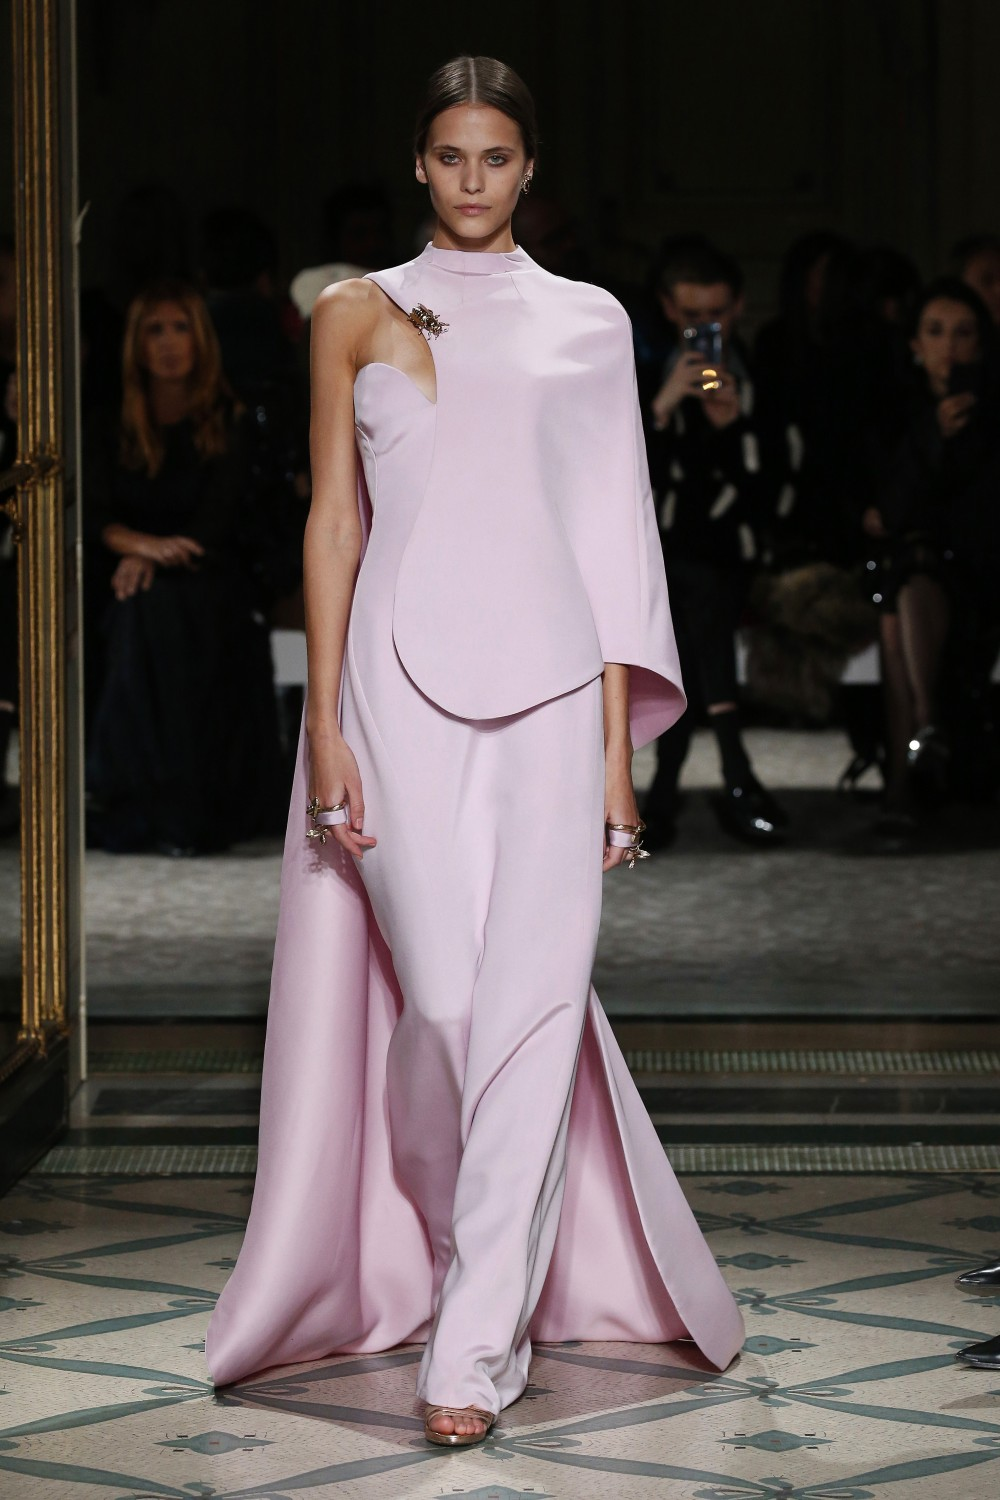 Antonio Grimaldi haute couture Paris 2019